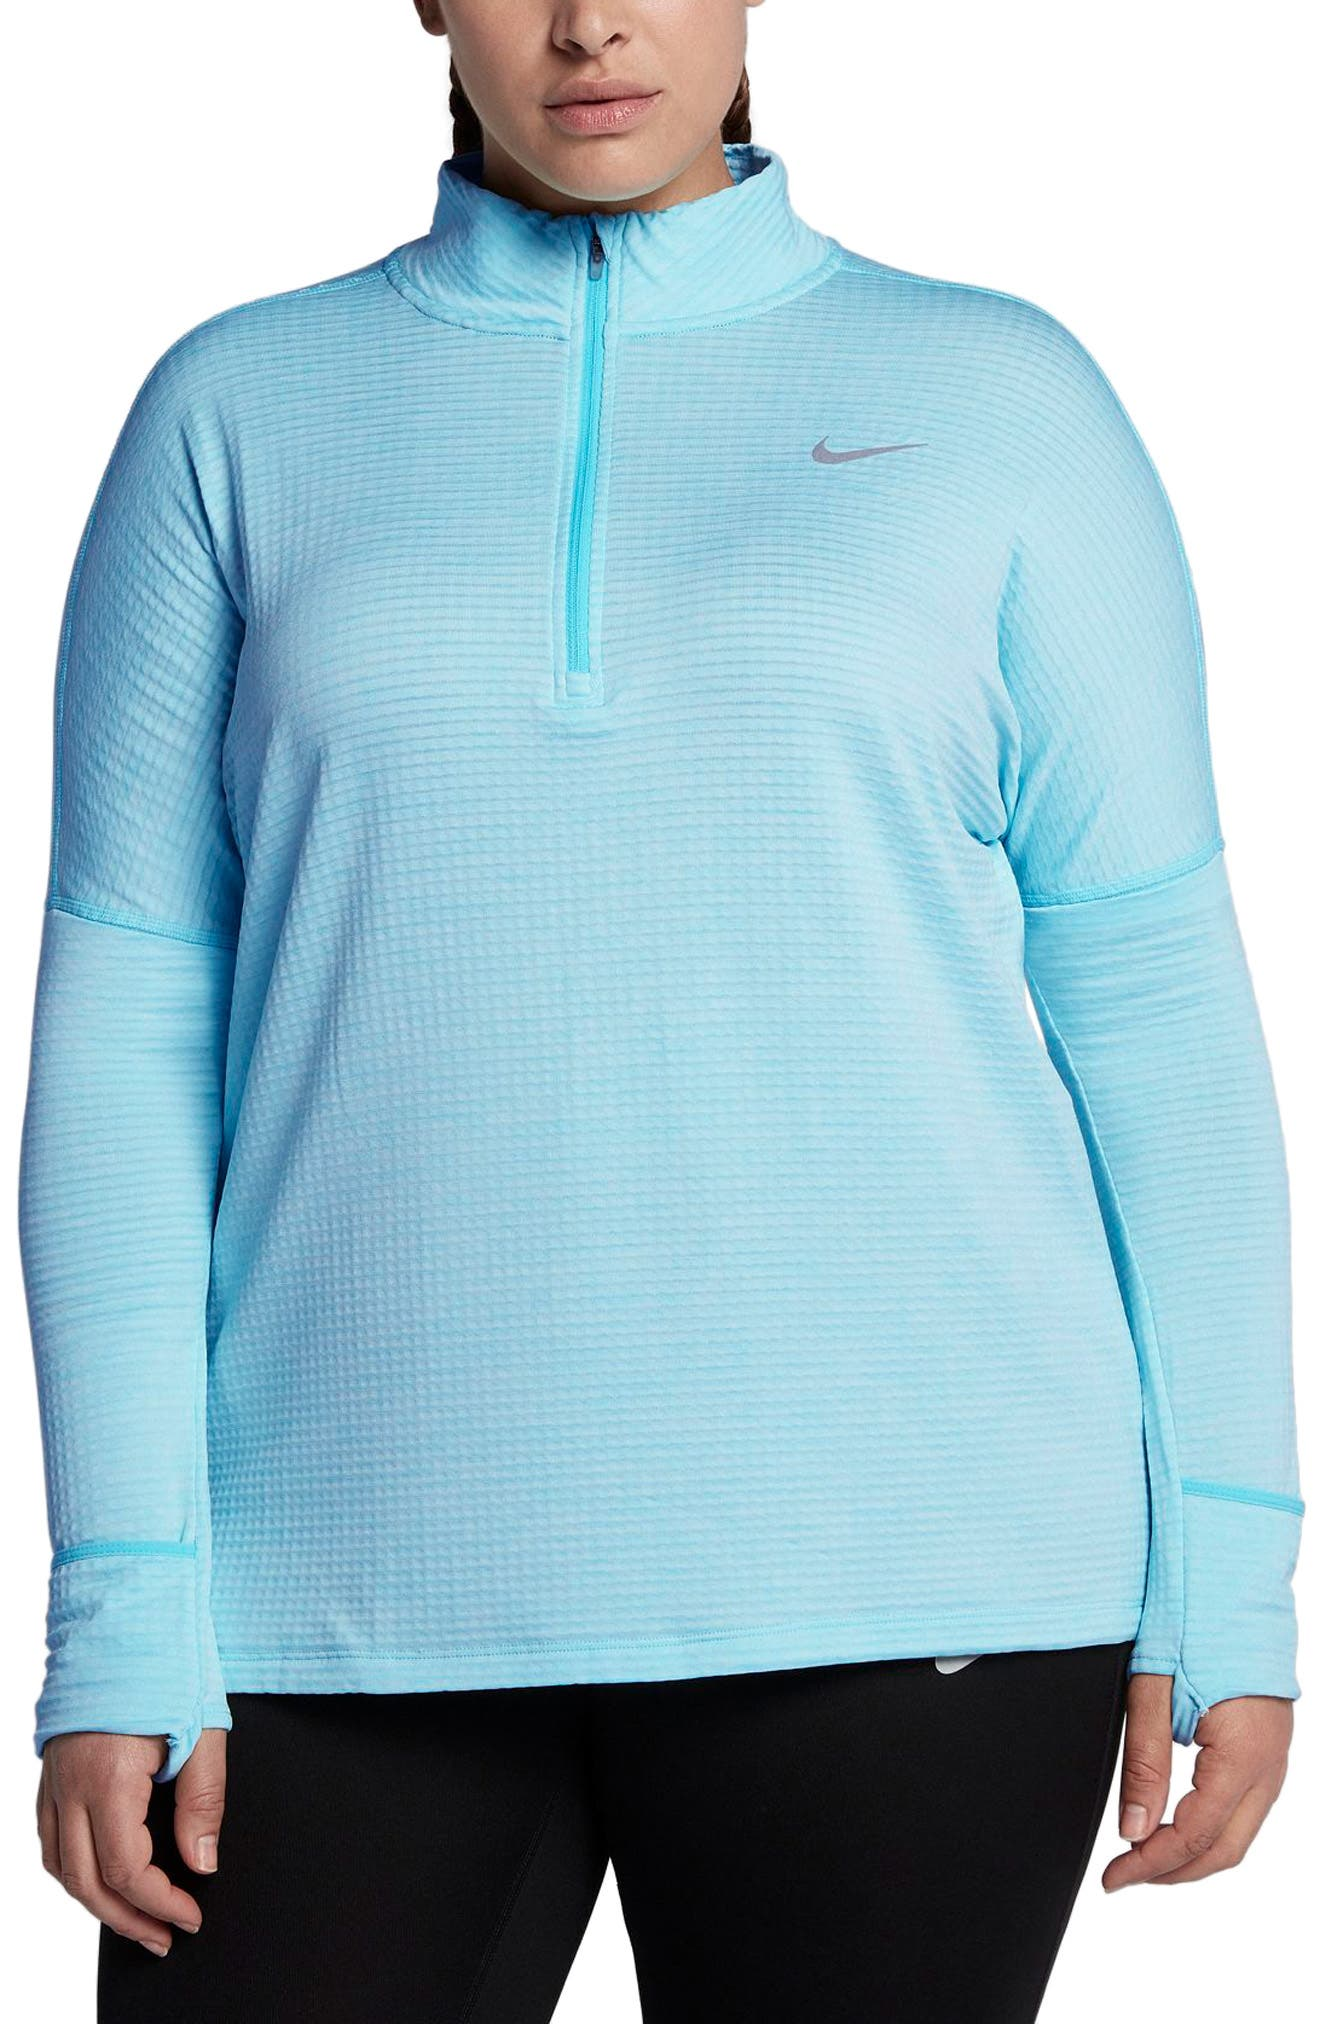 Sphere Element Long Sleeve Running Top,                         Main,                         color, Polarized Blue/ Htr